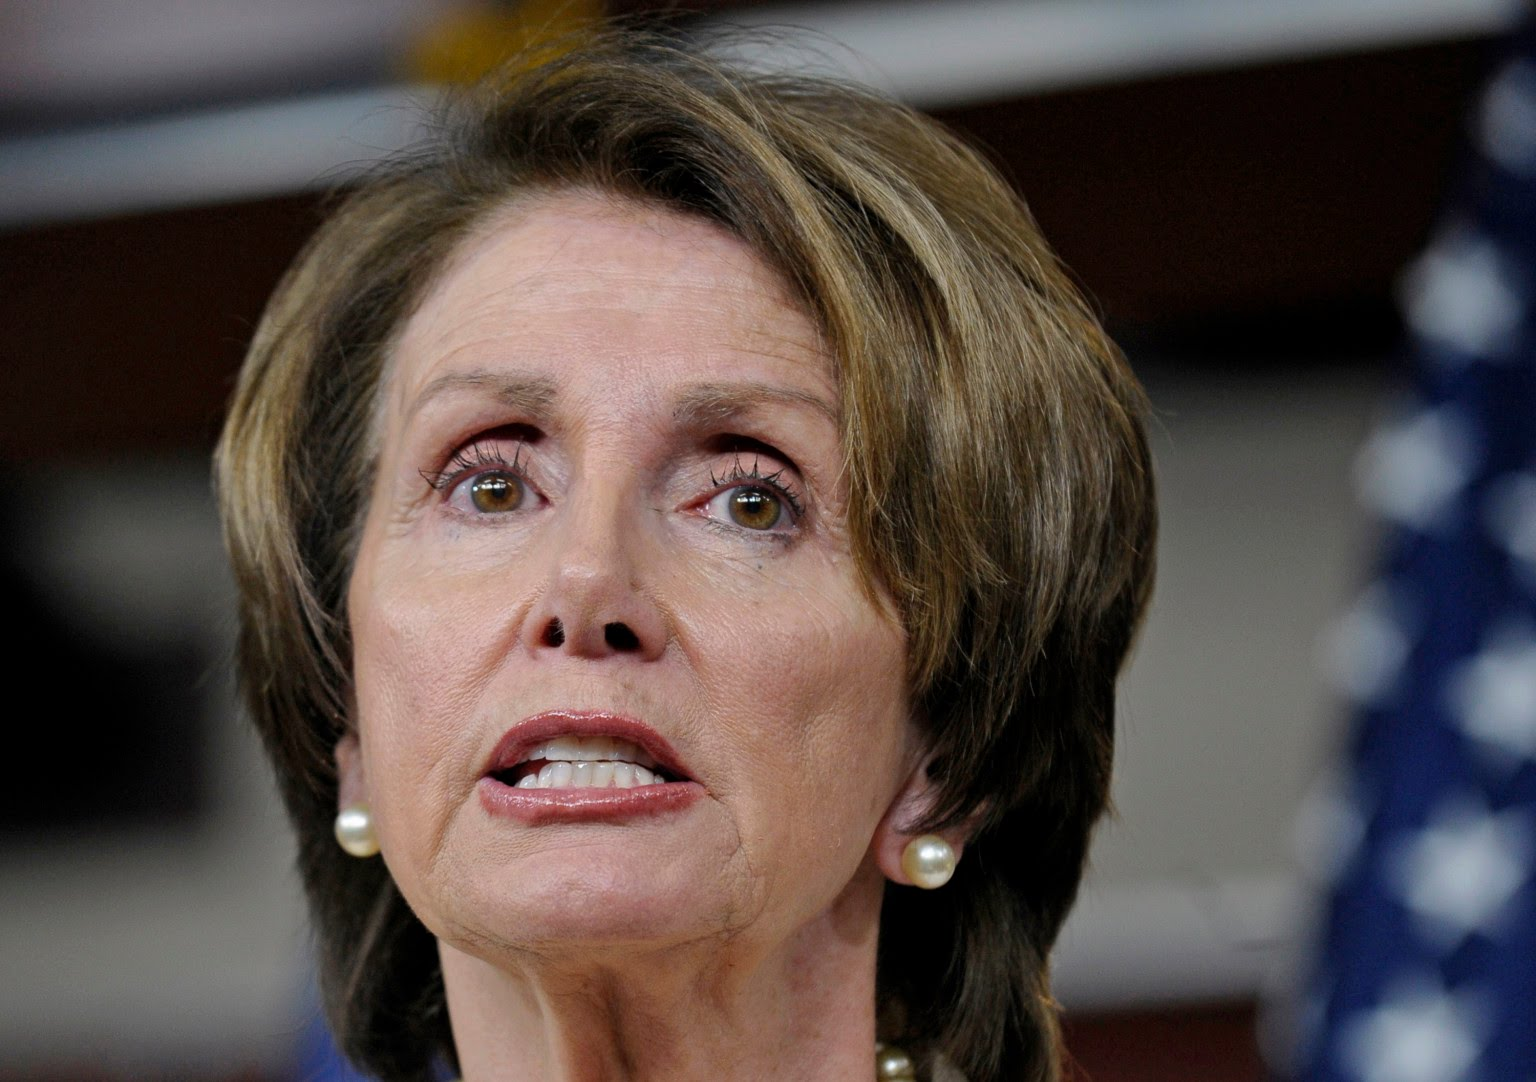 On His Way Out, Trump Just Made Pelosi' False Teeth Pop Out!